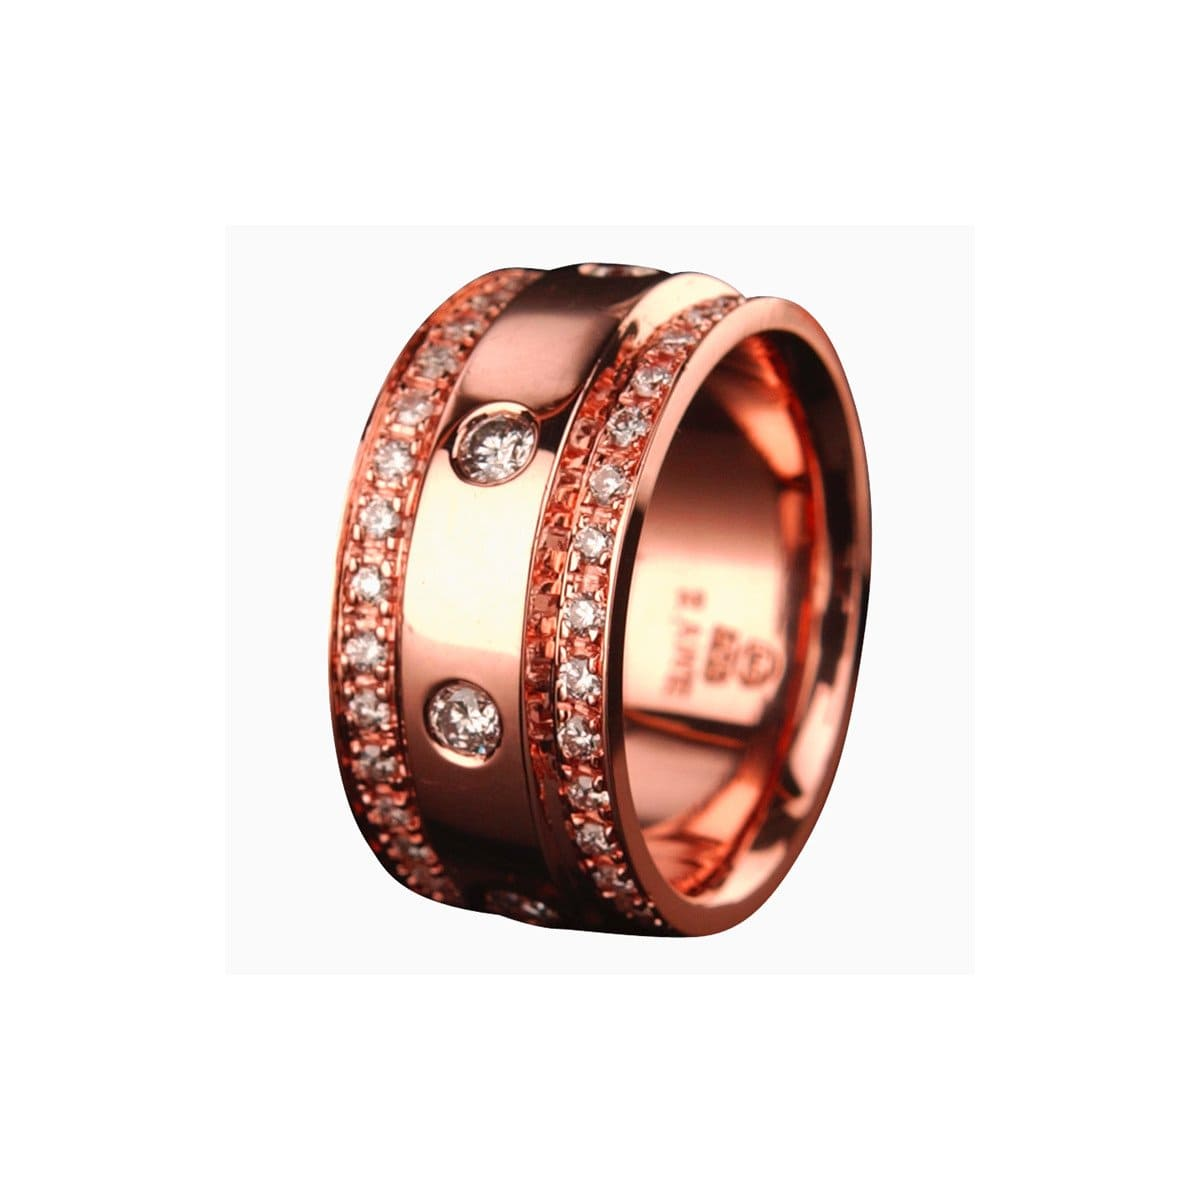 PAPARAZZI BAND - Chris Aire Fine Jewelry & Timepieces